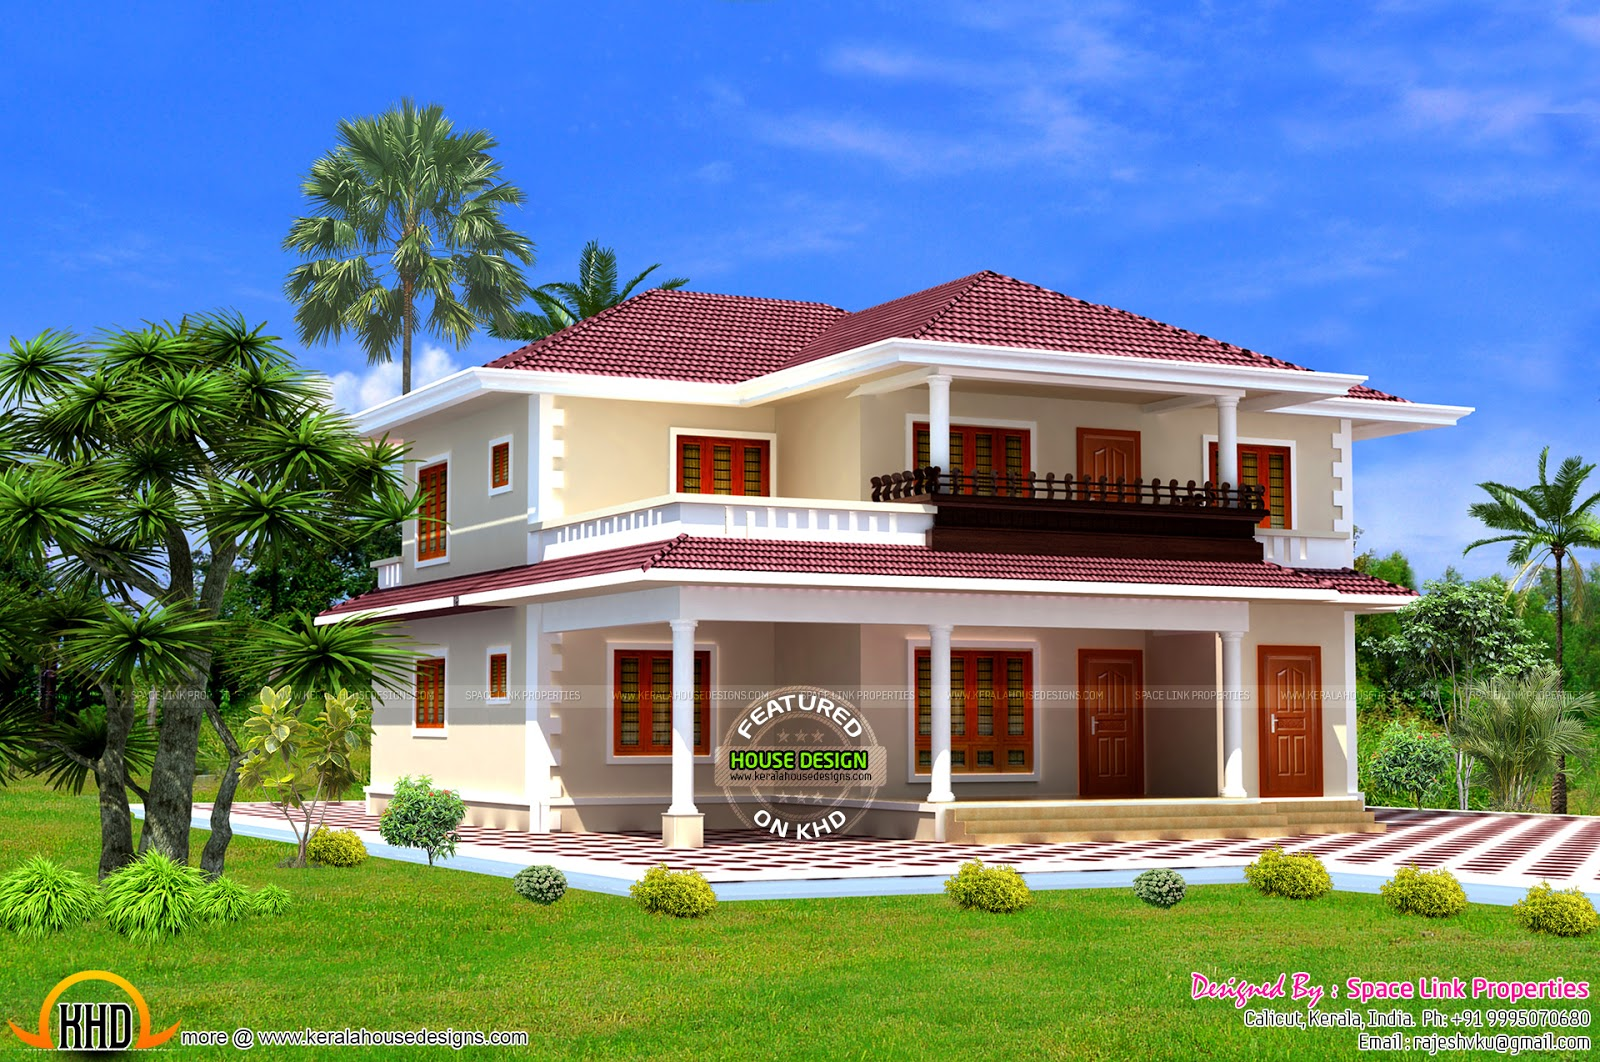 Awesome looking typical kerala model house kerala home for Homes models and plans